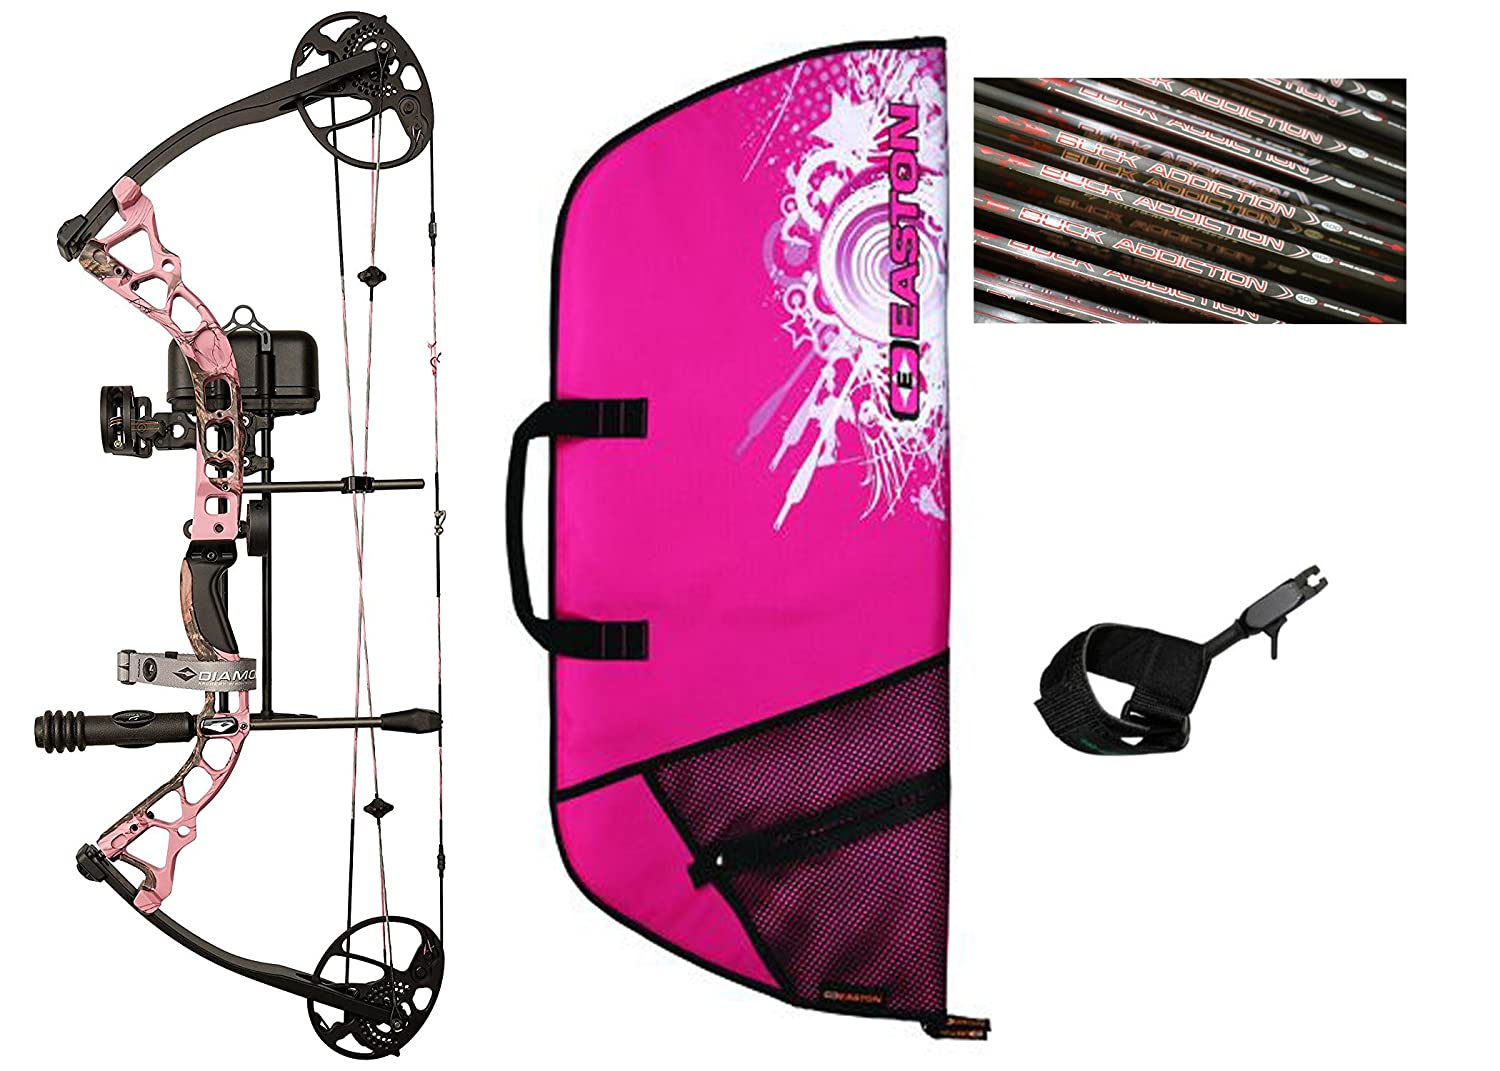 Diamond Infinite Edge Pro Compound Bow, Pink, Right Hand, Ready to Hunt  Package